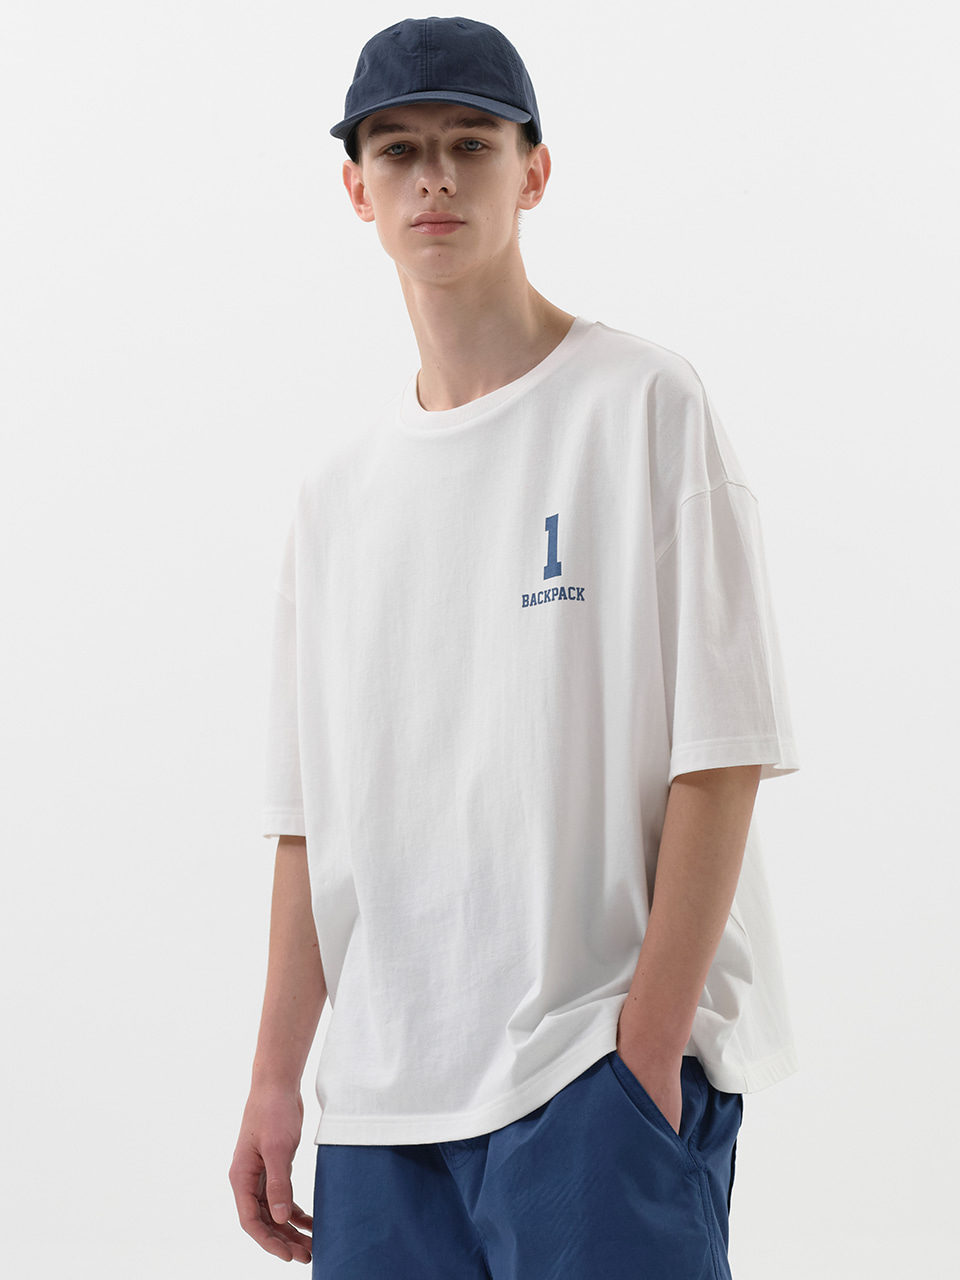 SOUNDSLIFE - 1 BACKPACK Tee White